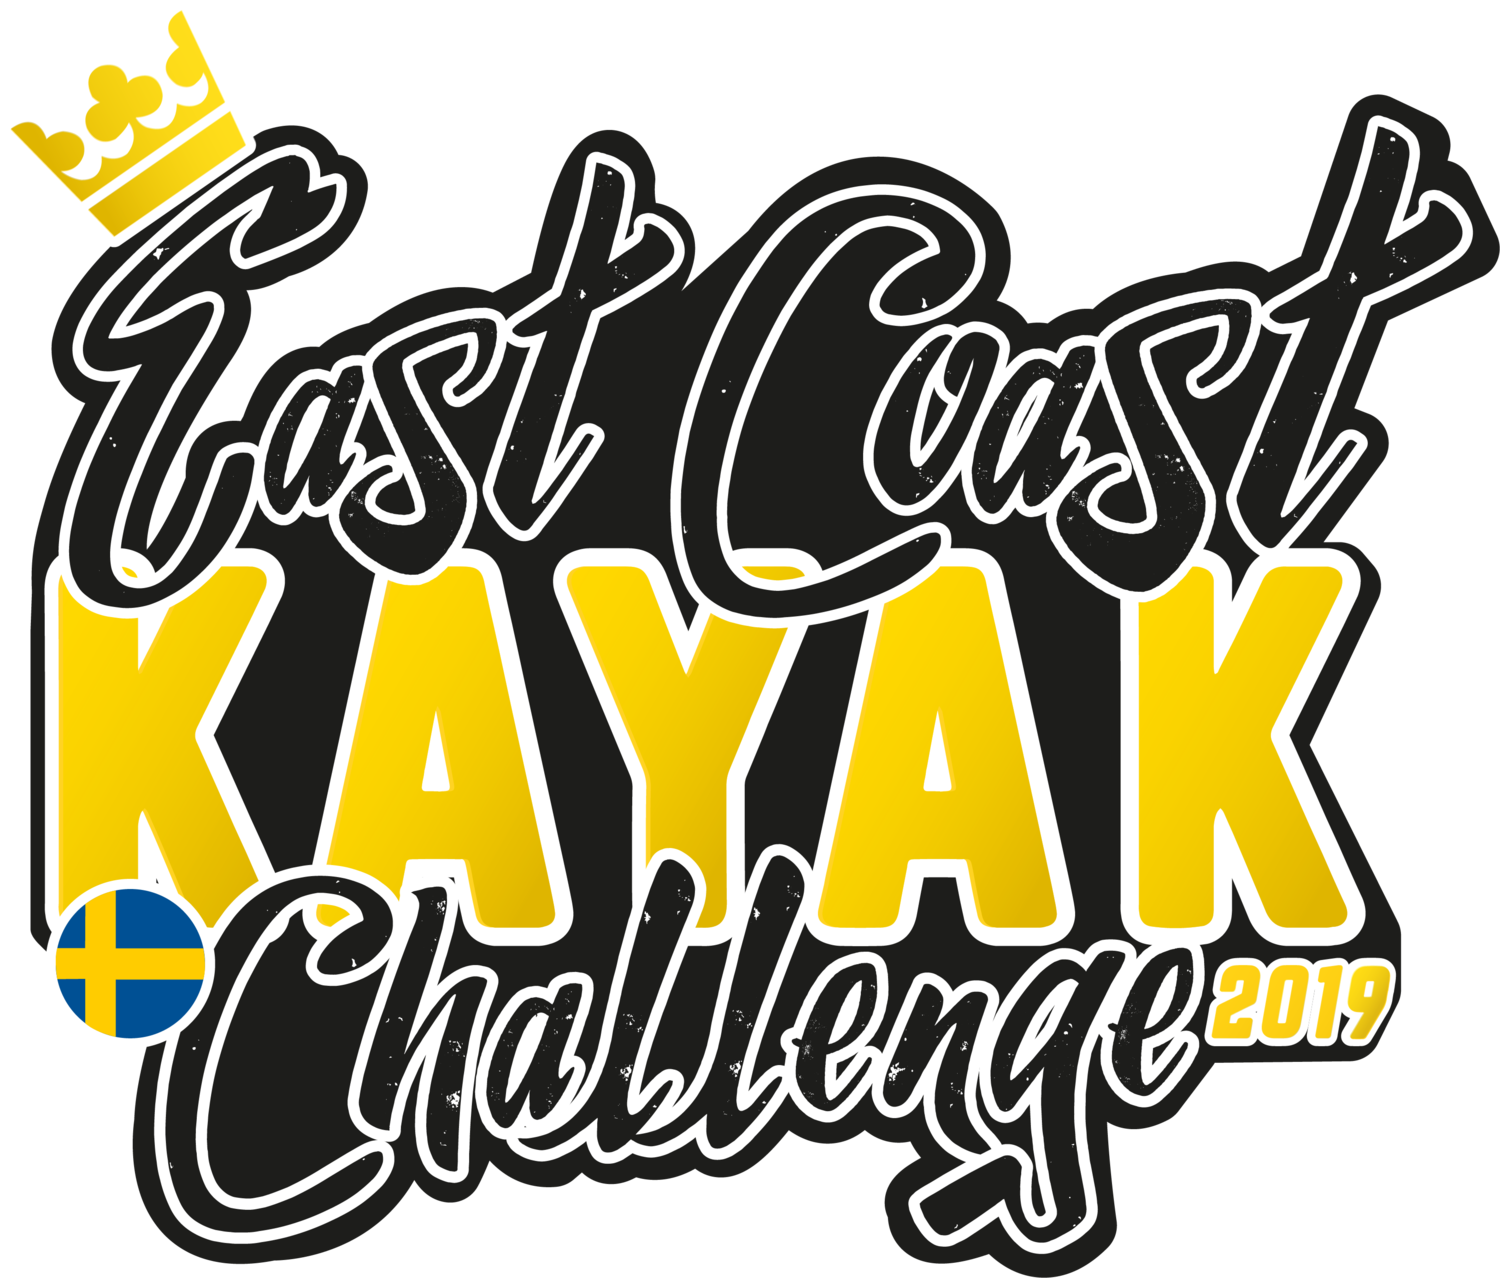 East Coast Kayak Challenge